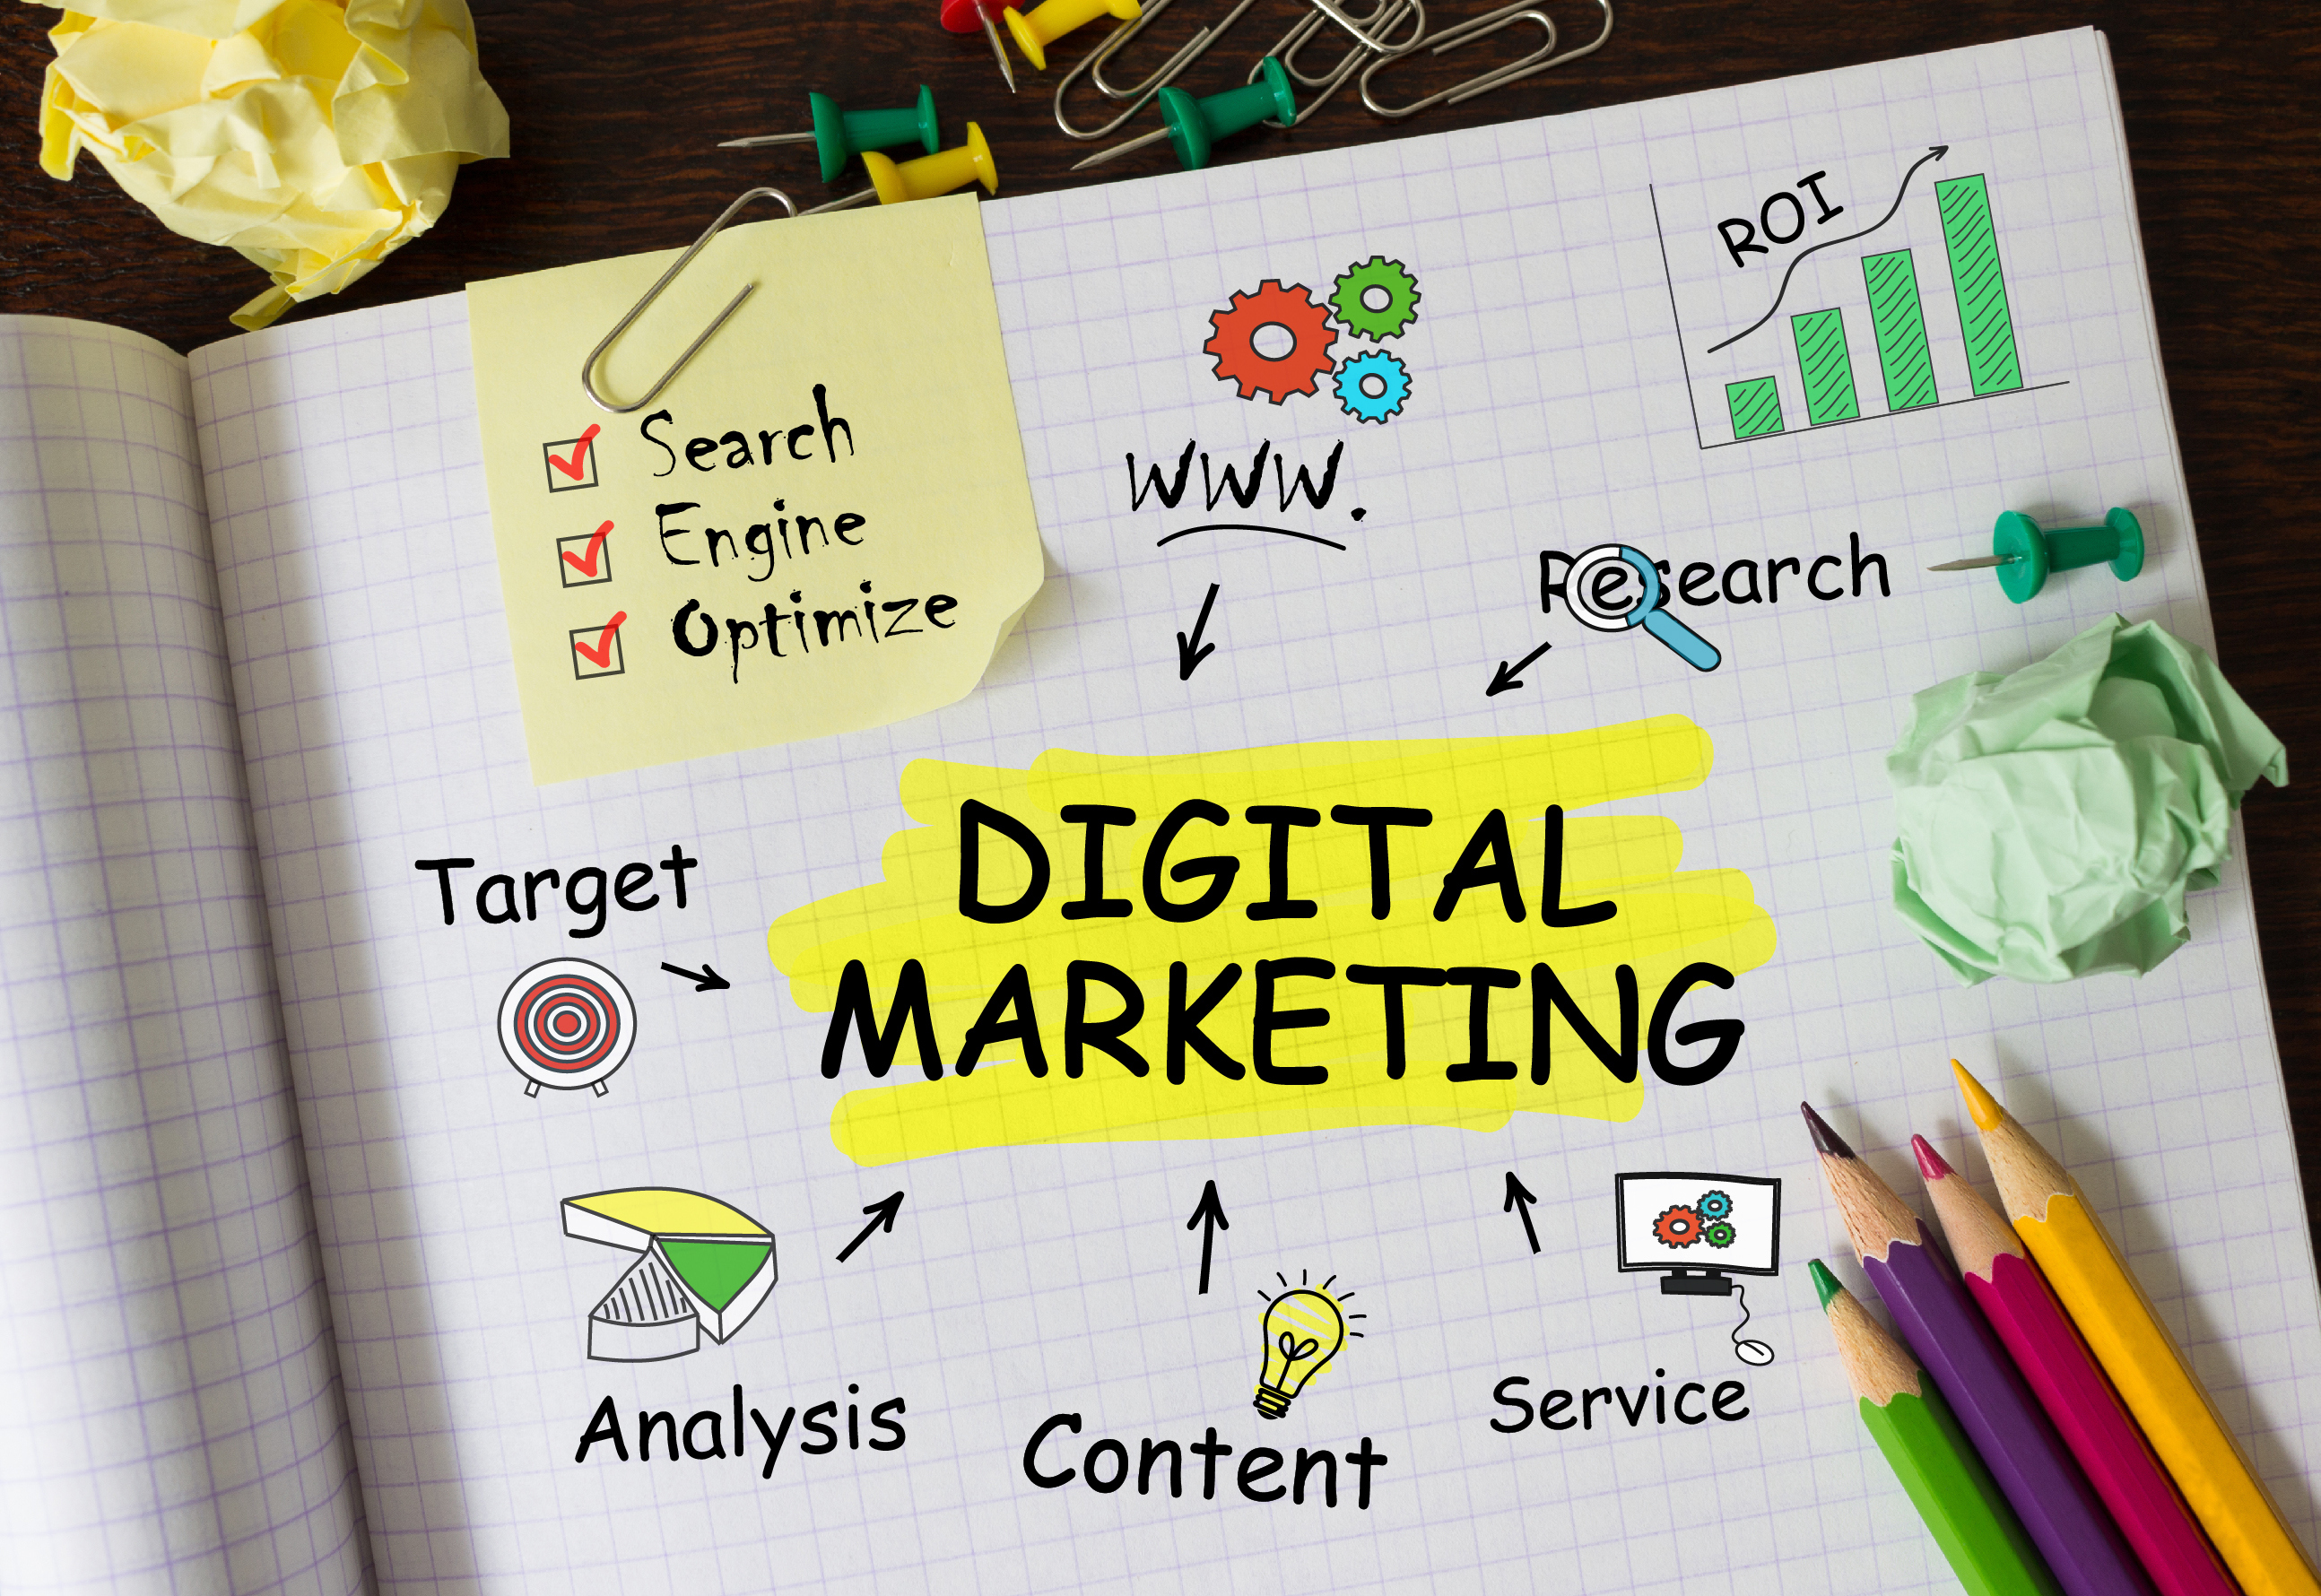 Digital Marketing Plan Refresh: Out with the Old and In with the New